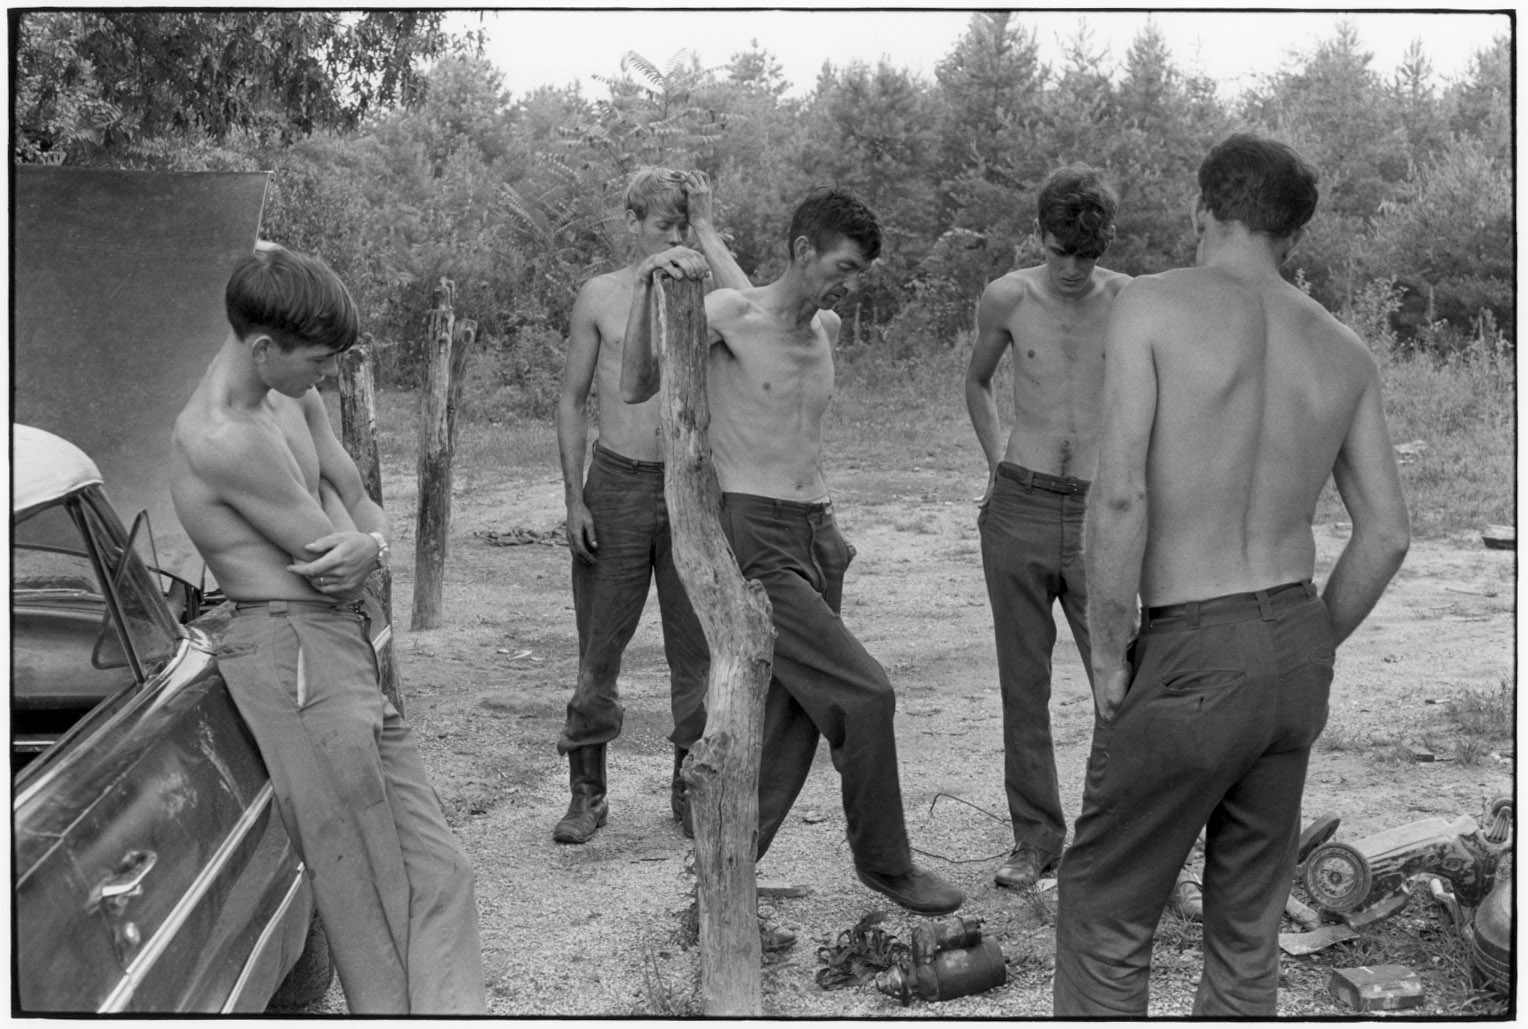 """Men without shirts; kicking car starter on the ground"" - William Gedney, 1972"